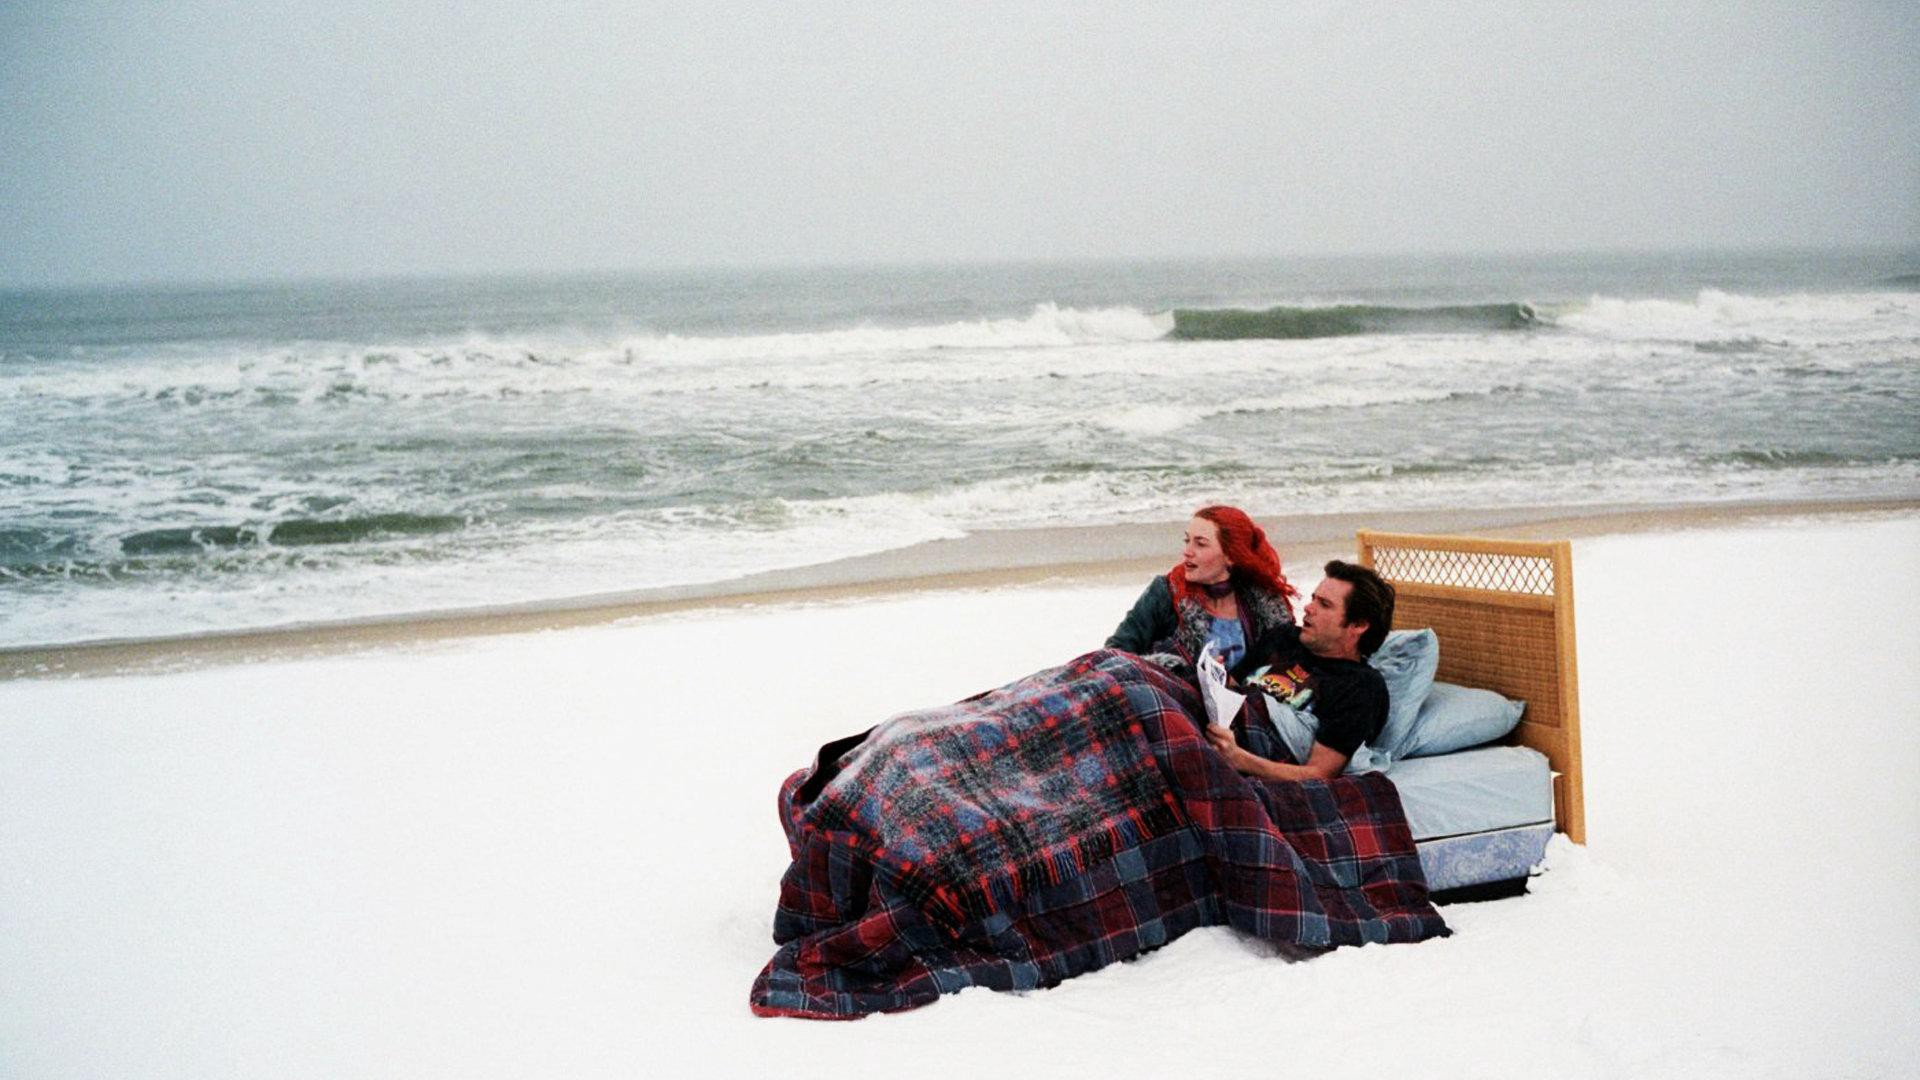 Eternal Sunshine of the Spotless Mind Analysis: Remembering Love